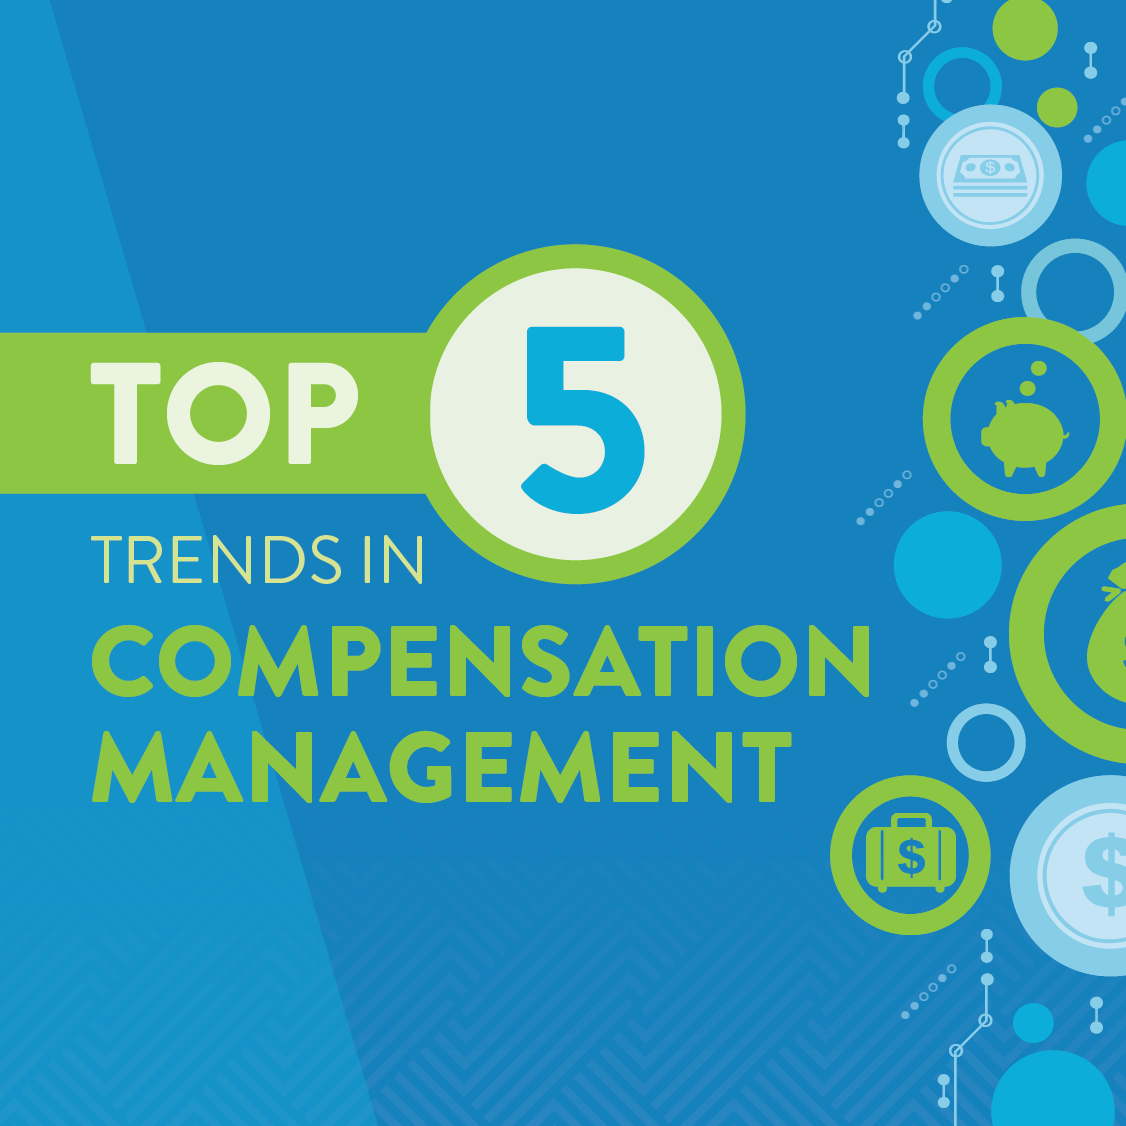 5 Trends in Compensation Management